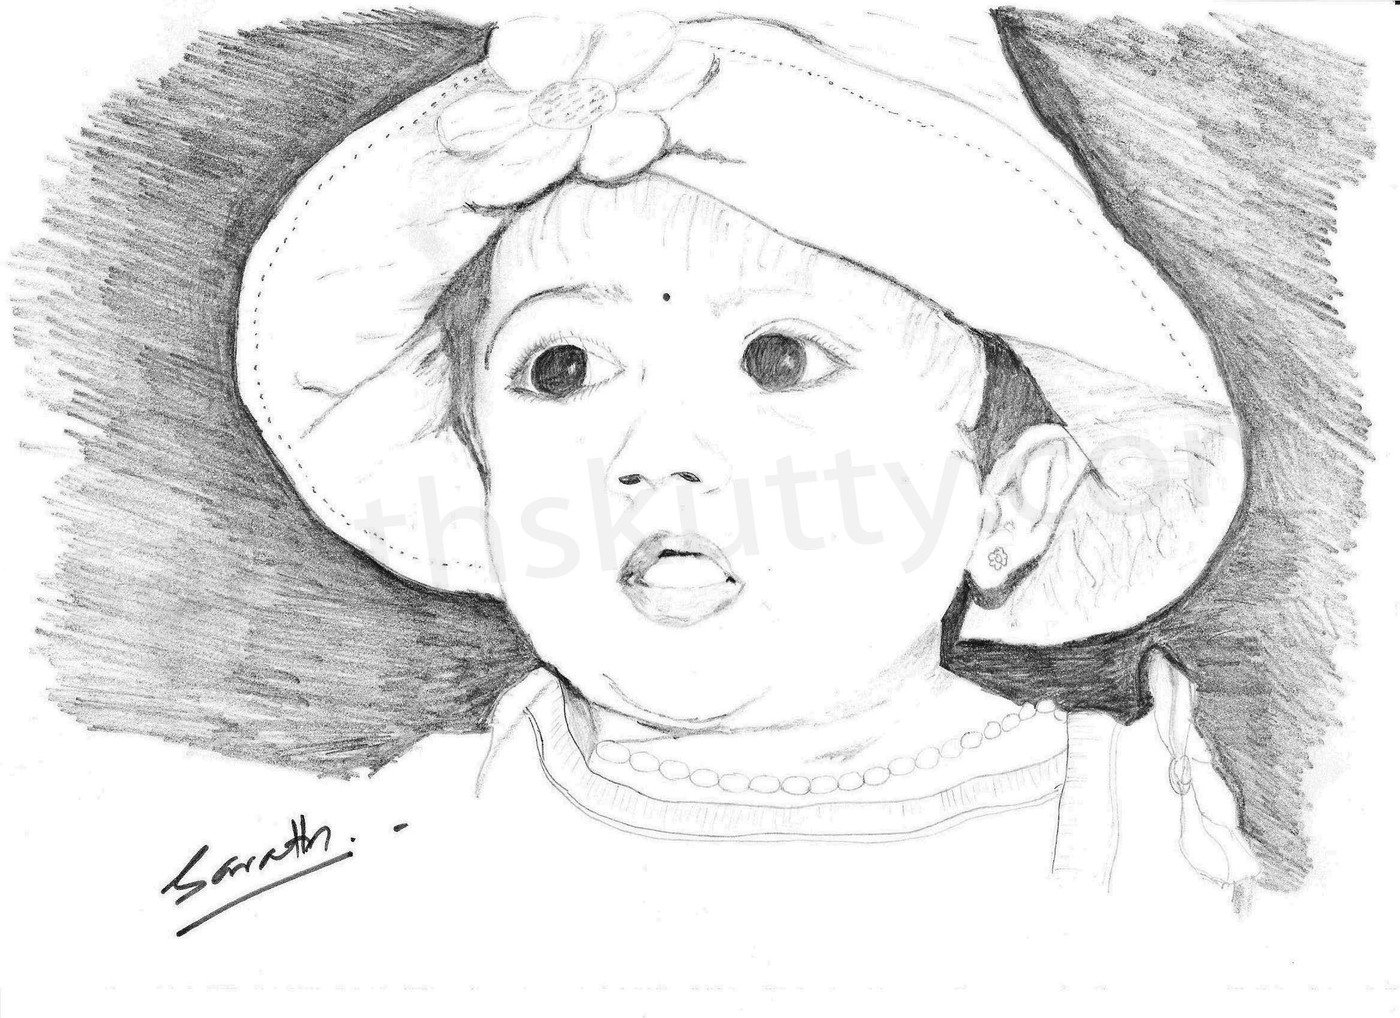 Sketches by Sarath S. Kutty at Coroflot.com